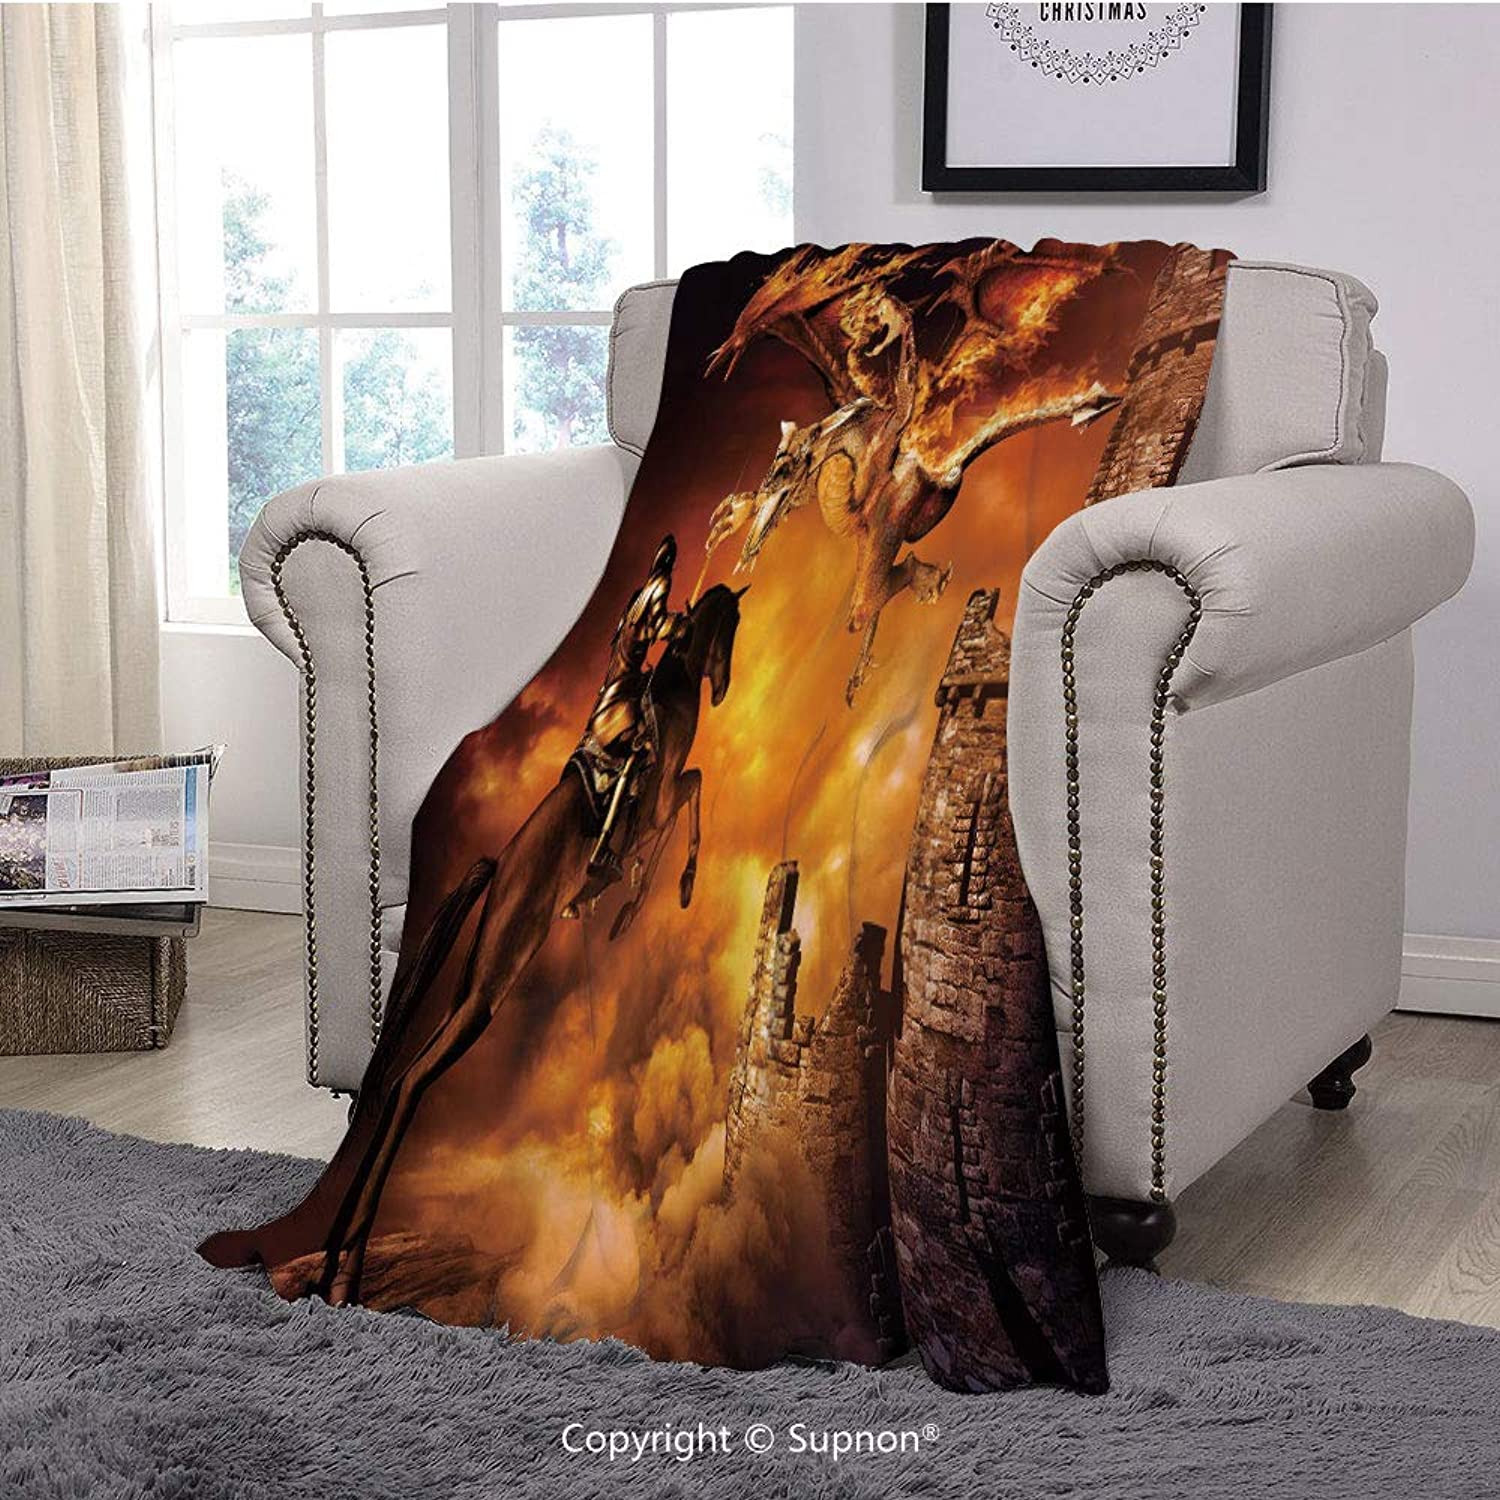 BeeMeng Throw Blanket Super Soft Fuzzy Light Blanket,Modern Decor,Kids Nursery Decor with a Knight on Horse Castle Mystic Fairytale Art,Black and Marigold(51  x 51 )